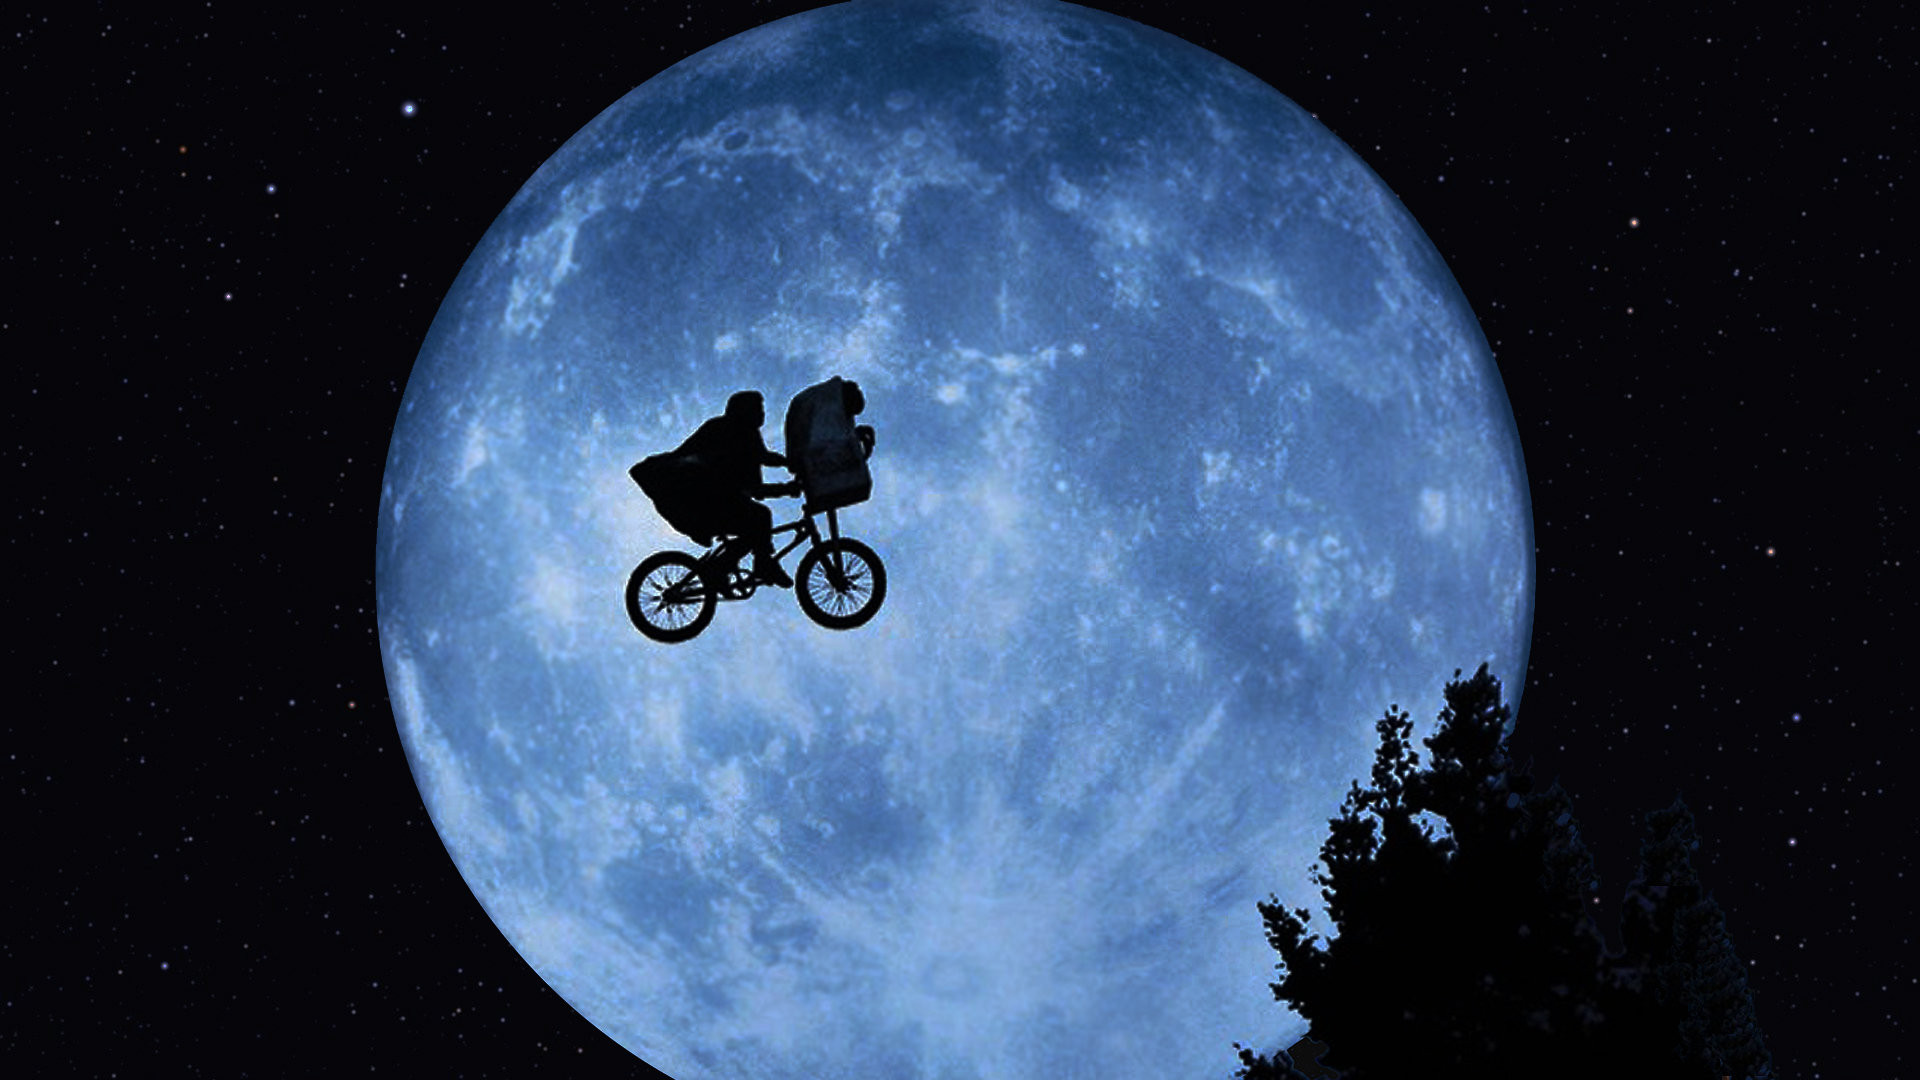 I want to see this scene in E.T. the Broadway musical!